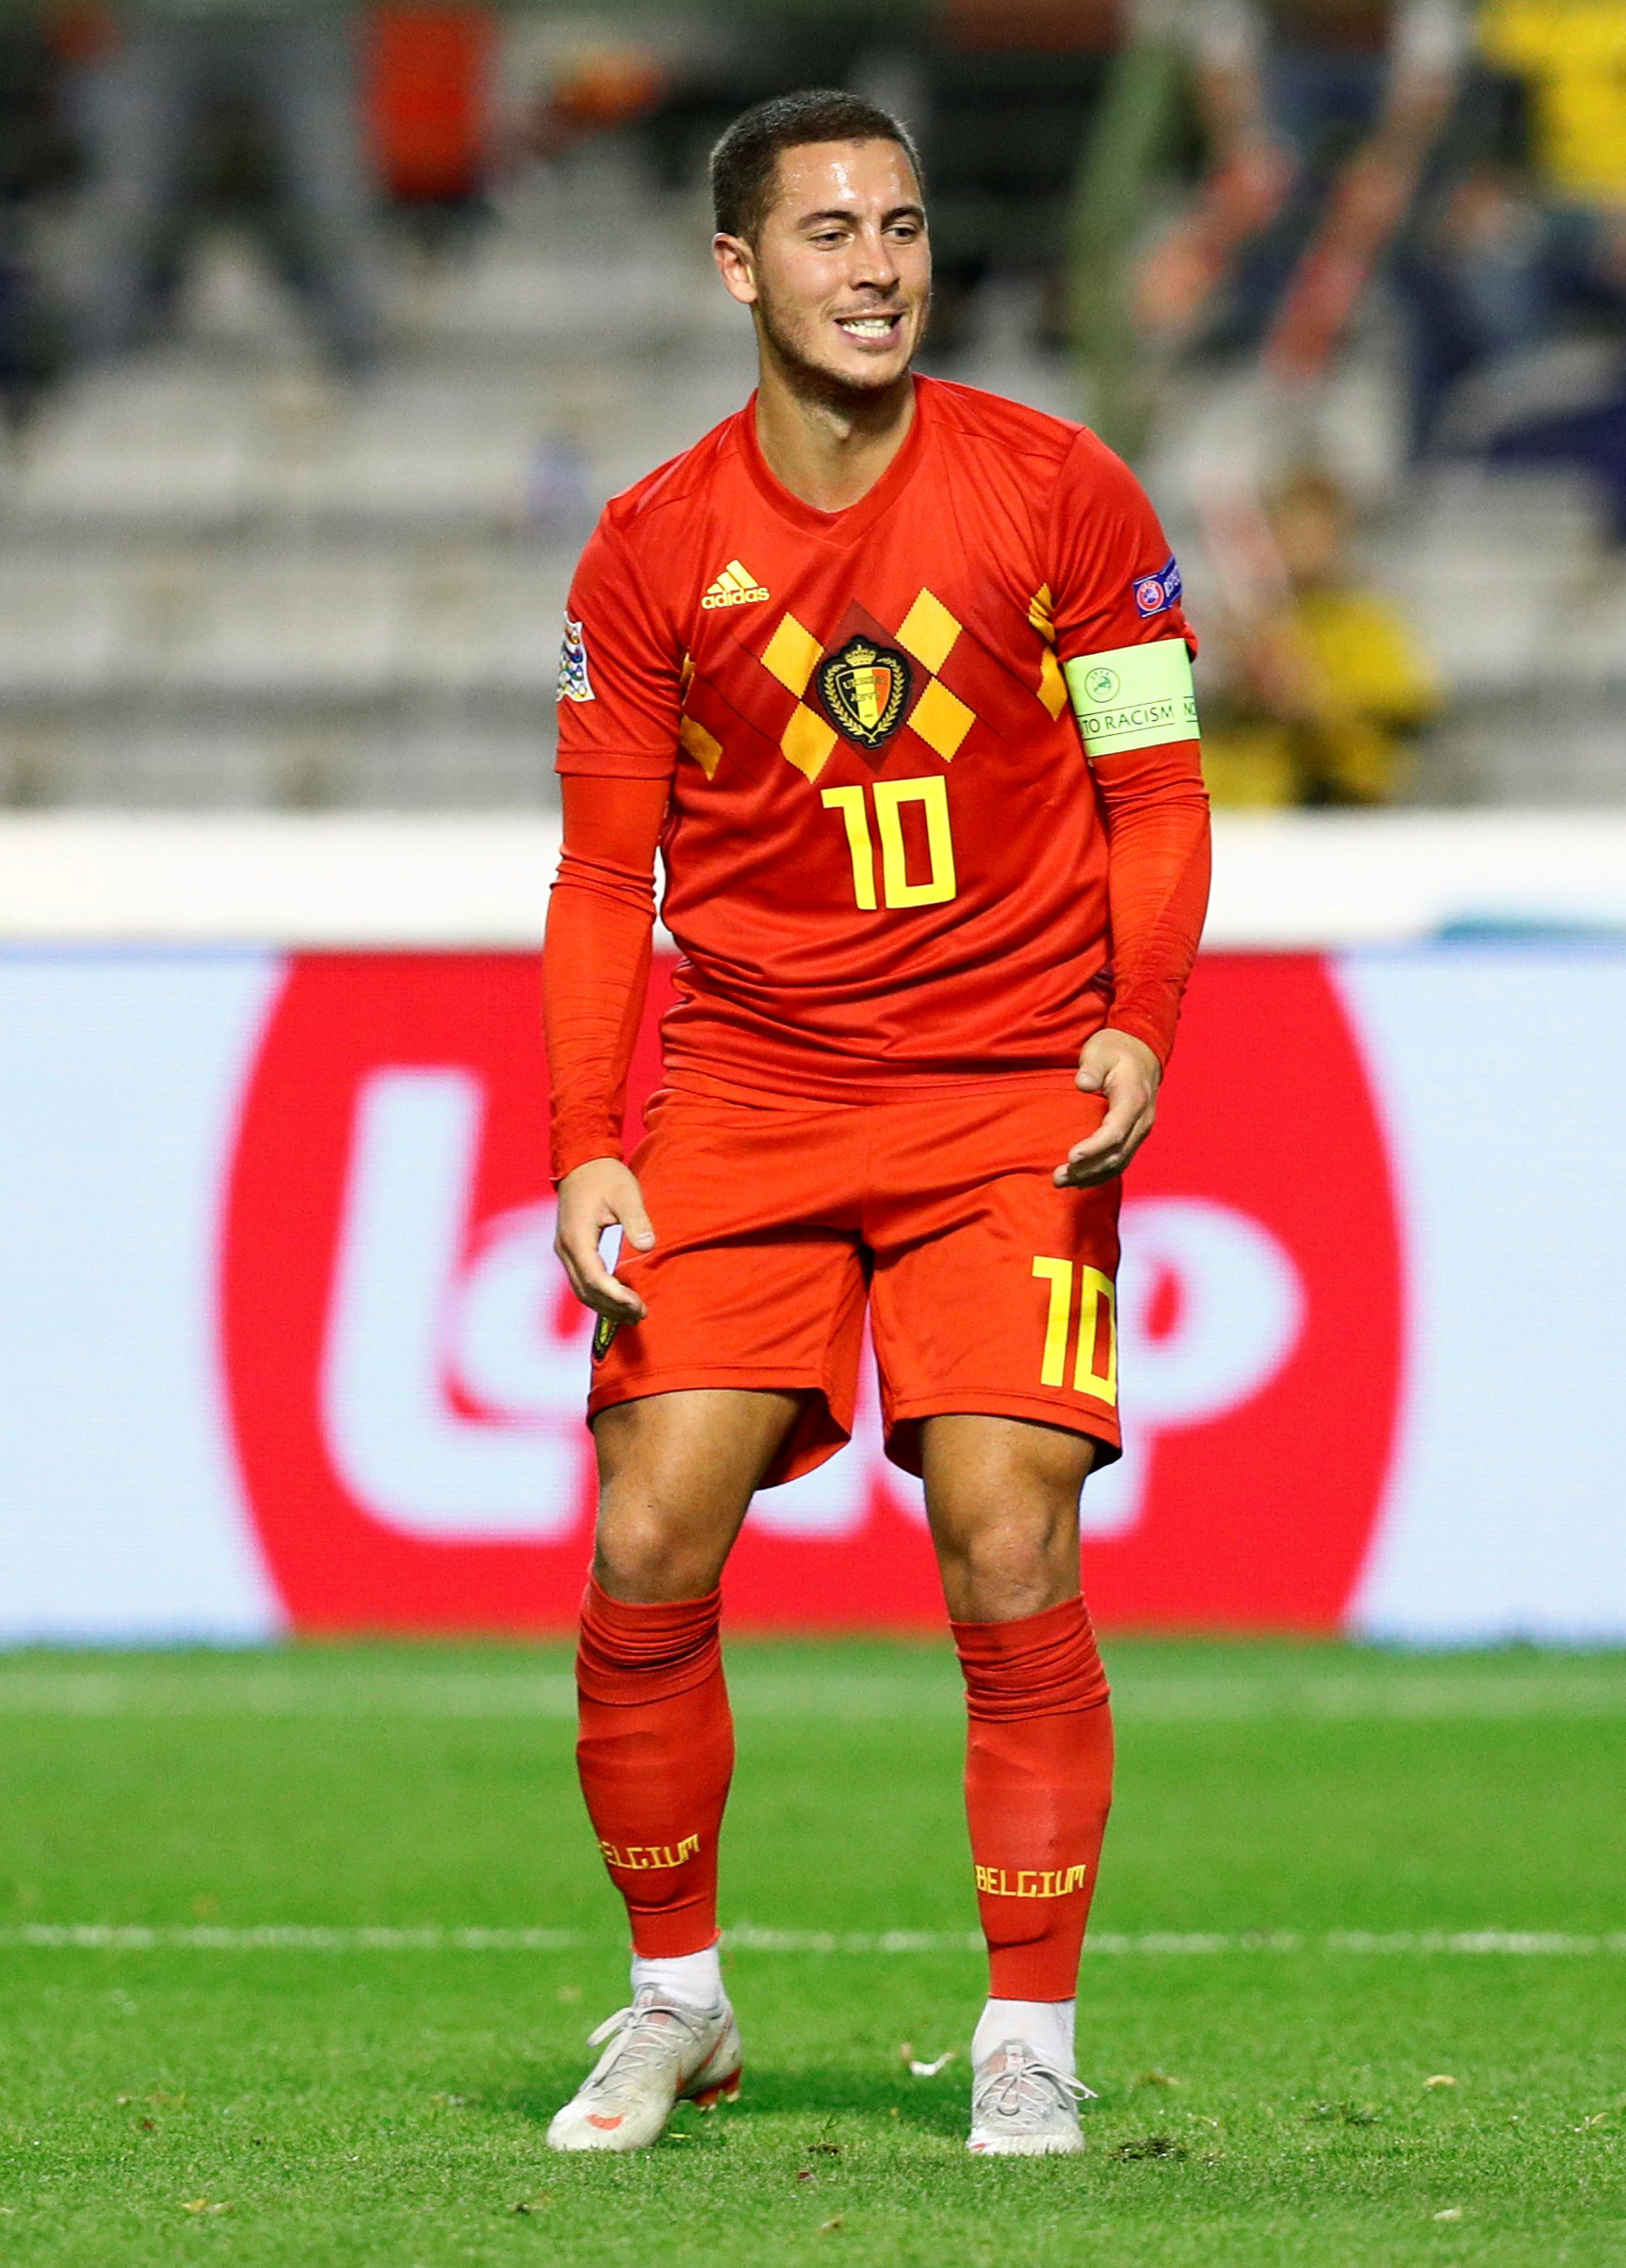 Football - Ligue des nations - Amical : Belgique-Pays-Bas en direct